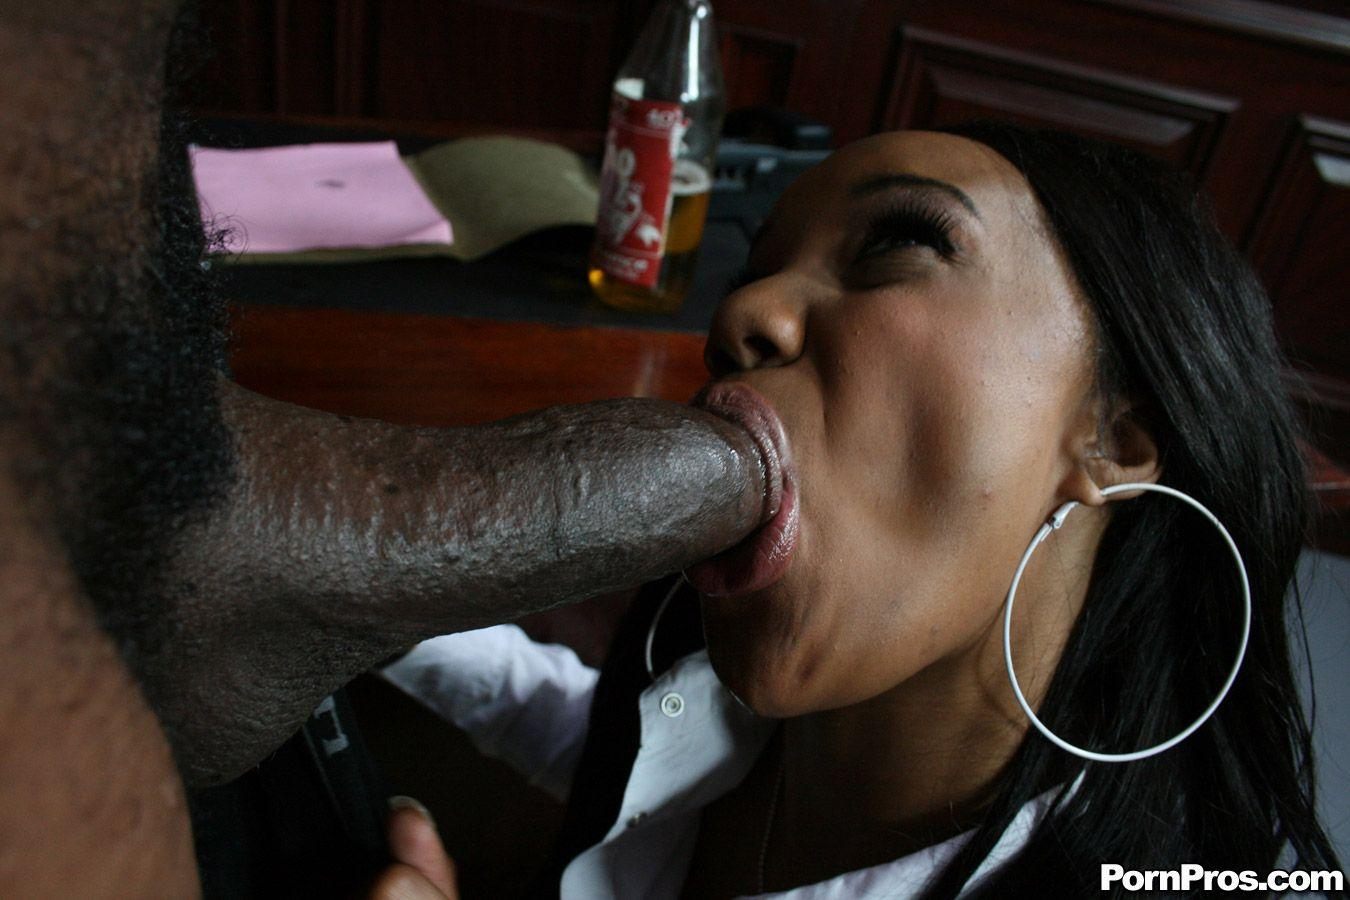 sucking cocks tube Free Bangbus tube videos with HD content of public porn with the tastiest hotties  playing  77 %6:53 Sexy innocent ebony jerking and sucking huge white dick.